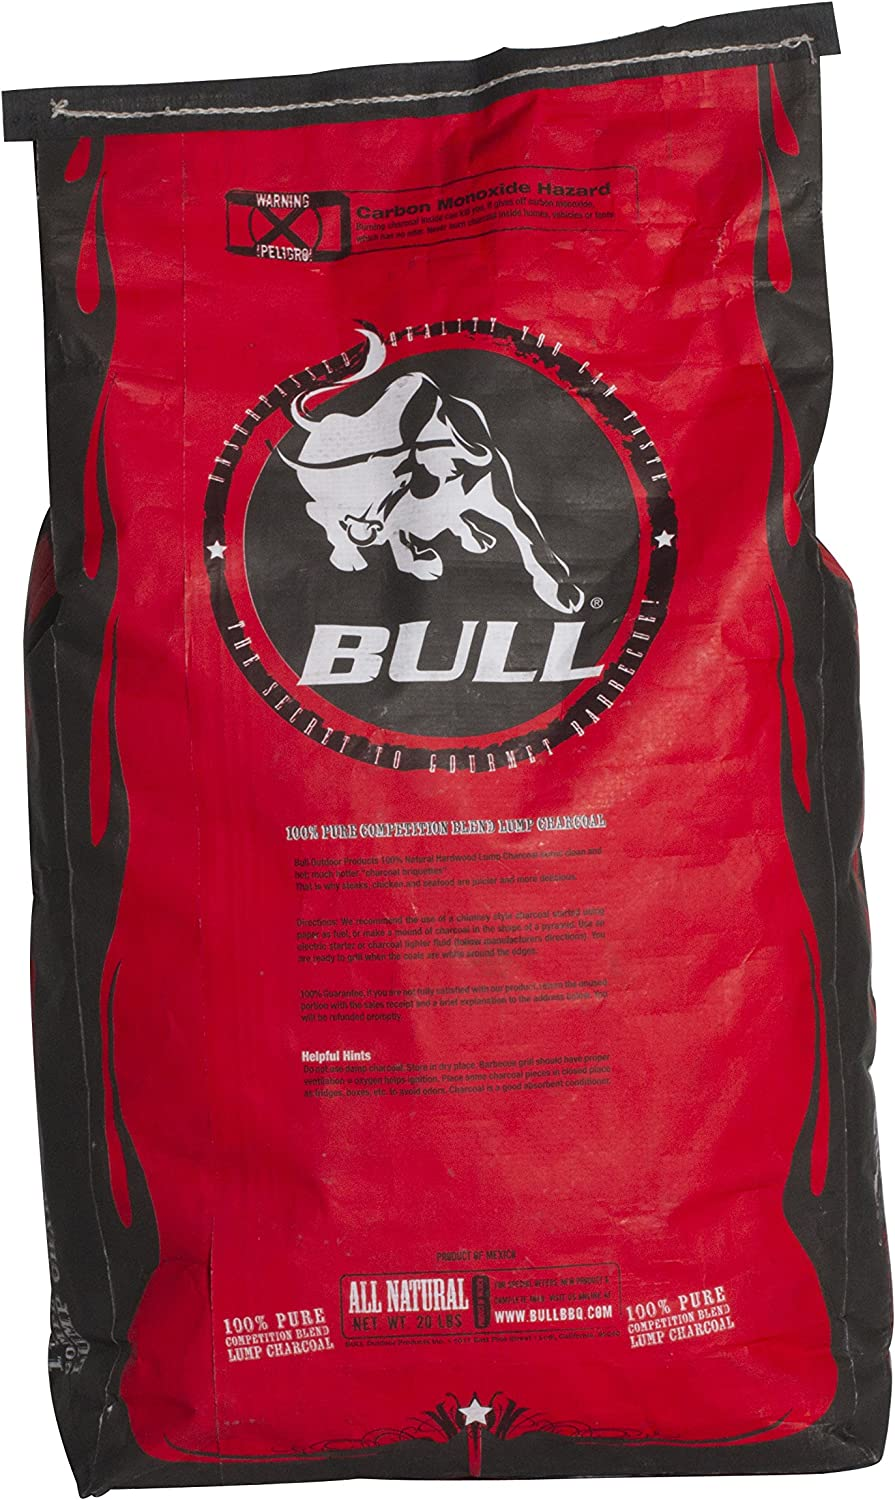 BULL Outdoor Products 100% Pure Charcoal Lump 未使用品 贈答品 Competition Blend